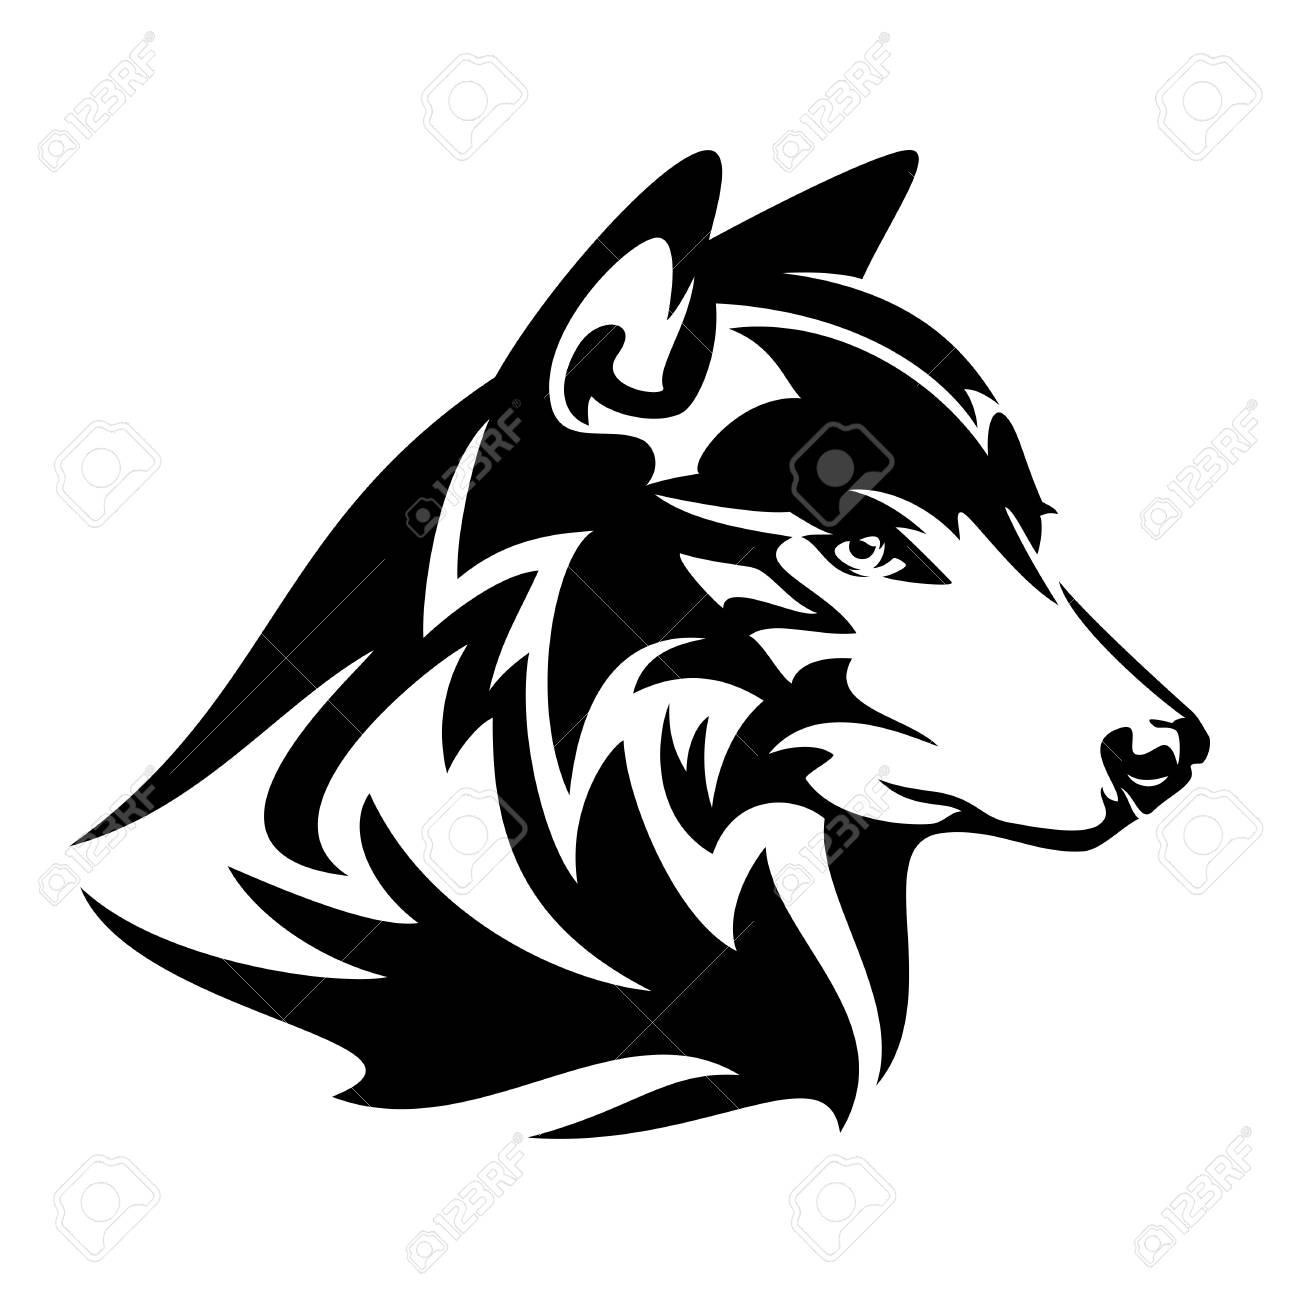 Wild Wolf Profile Head Black And White Vector Design Royalty Free Cliparts Vectors And Stock Illustration Image 110725499